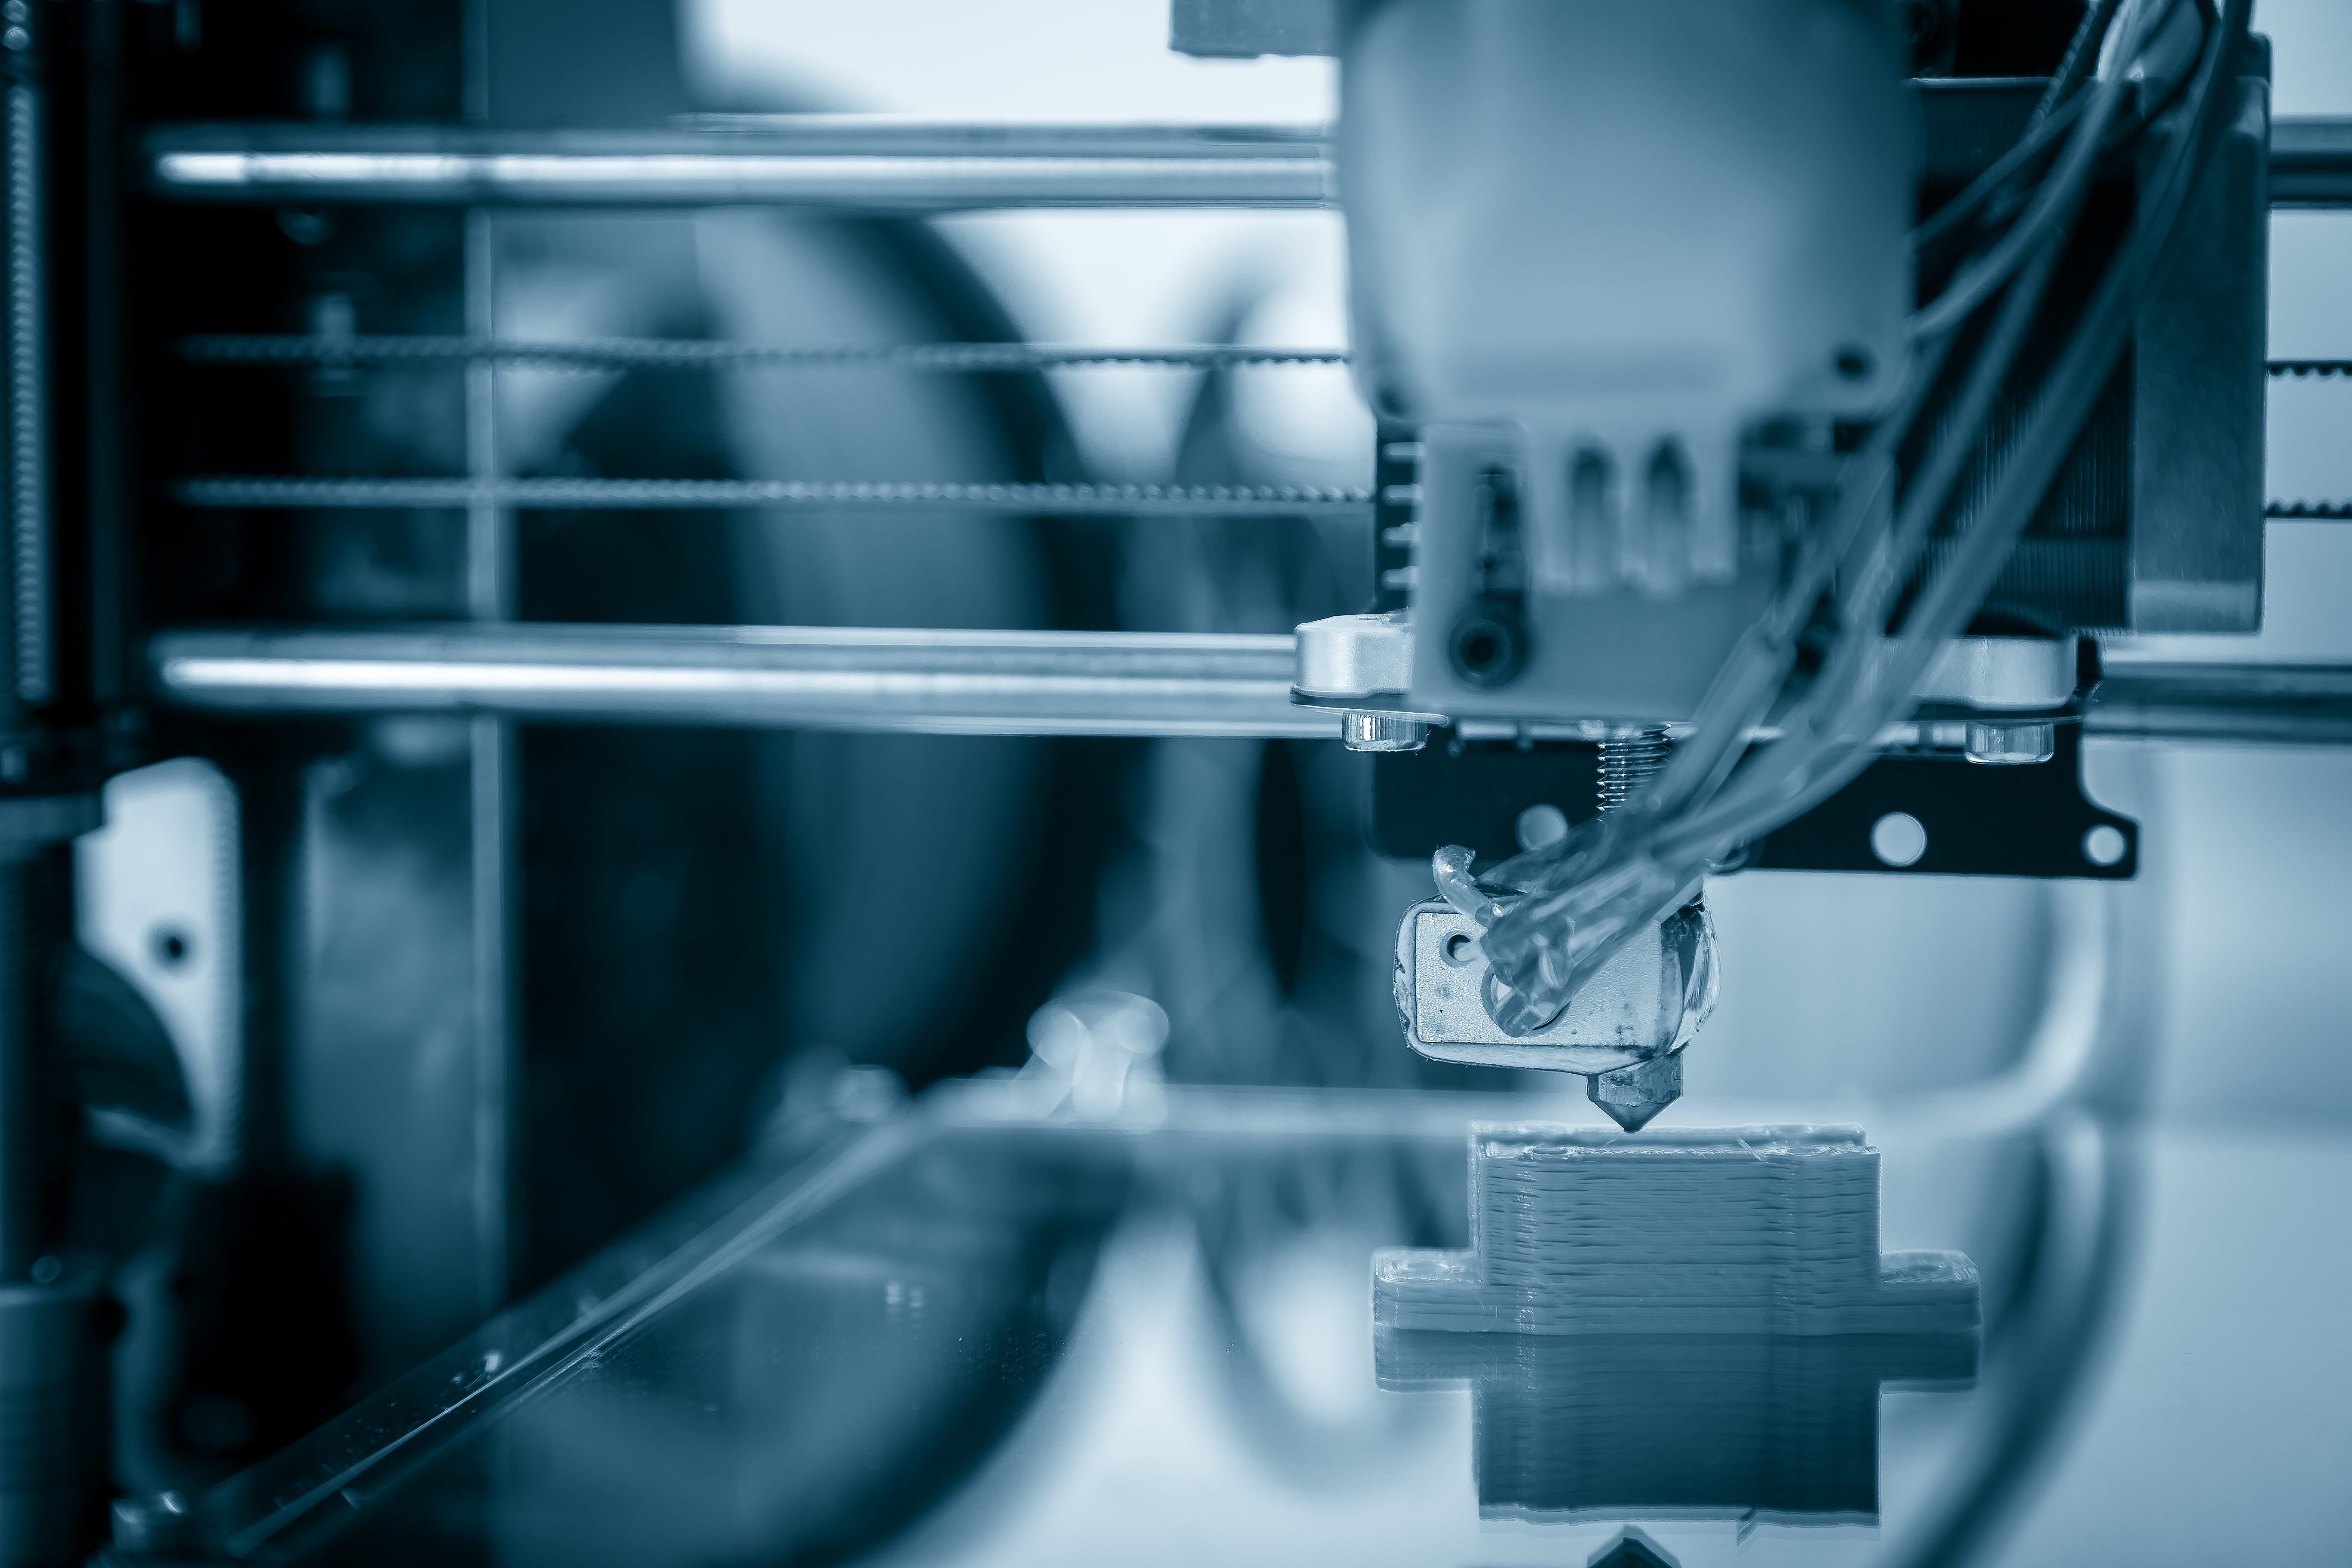 Electronic three dimensional plastic printer during work , 3D printer, 3D printing all contribute to additive technologies